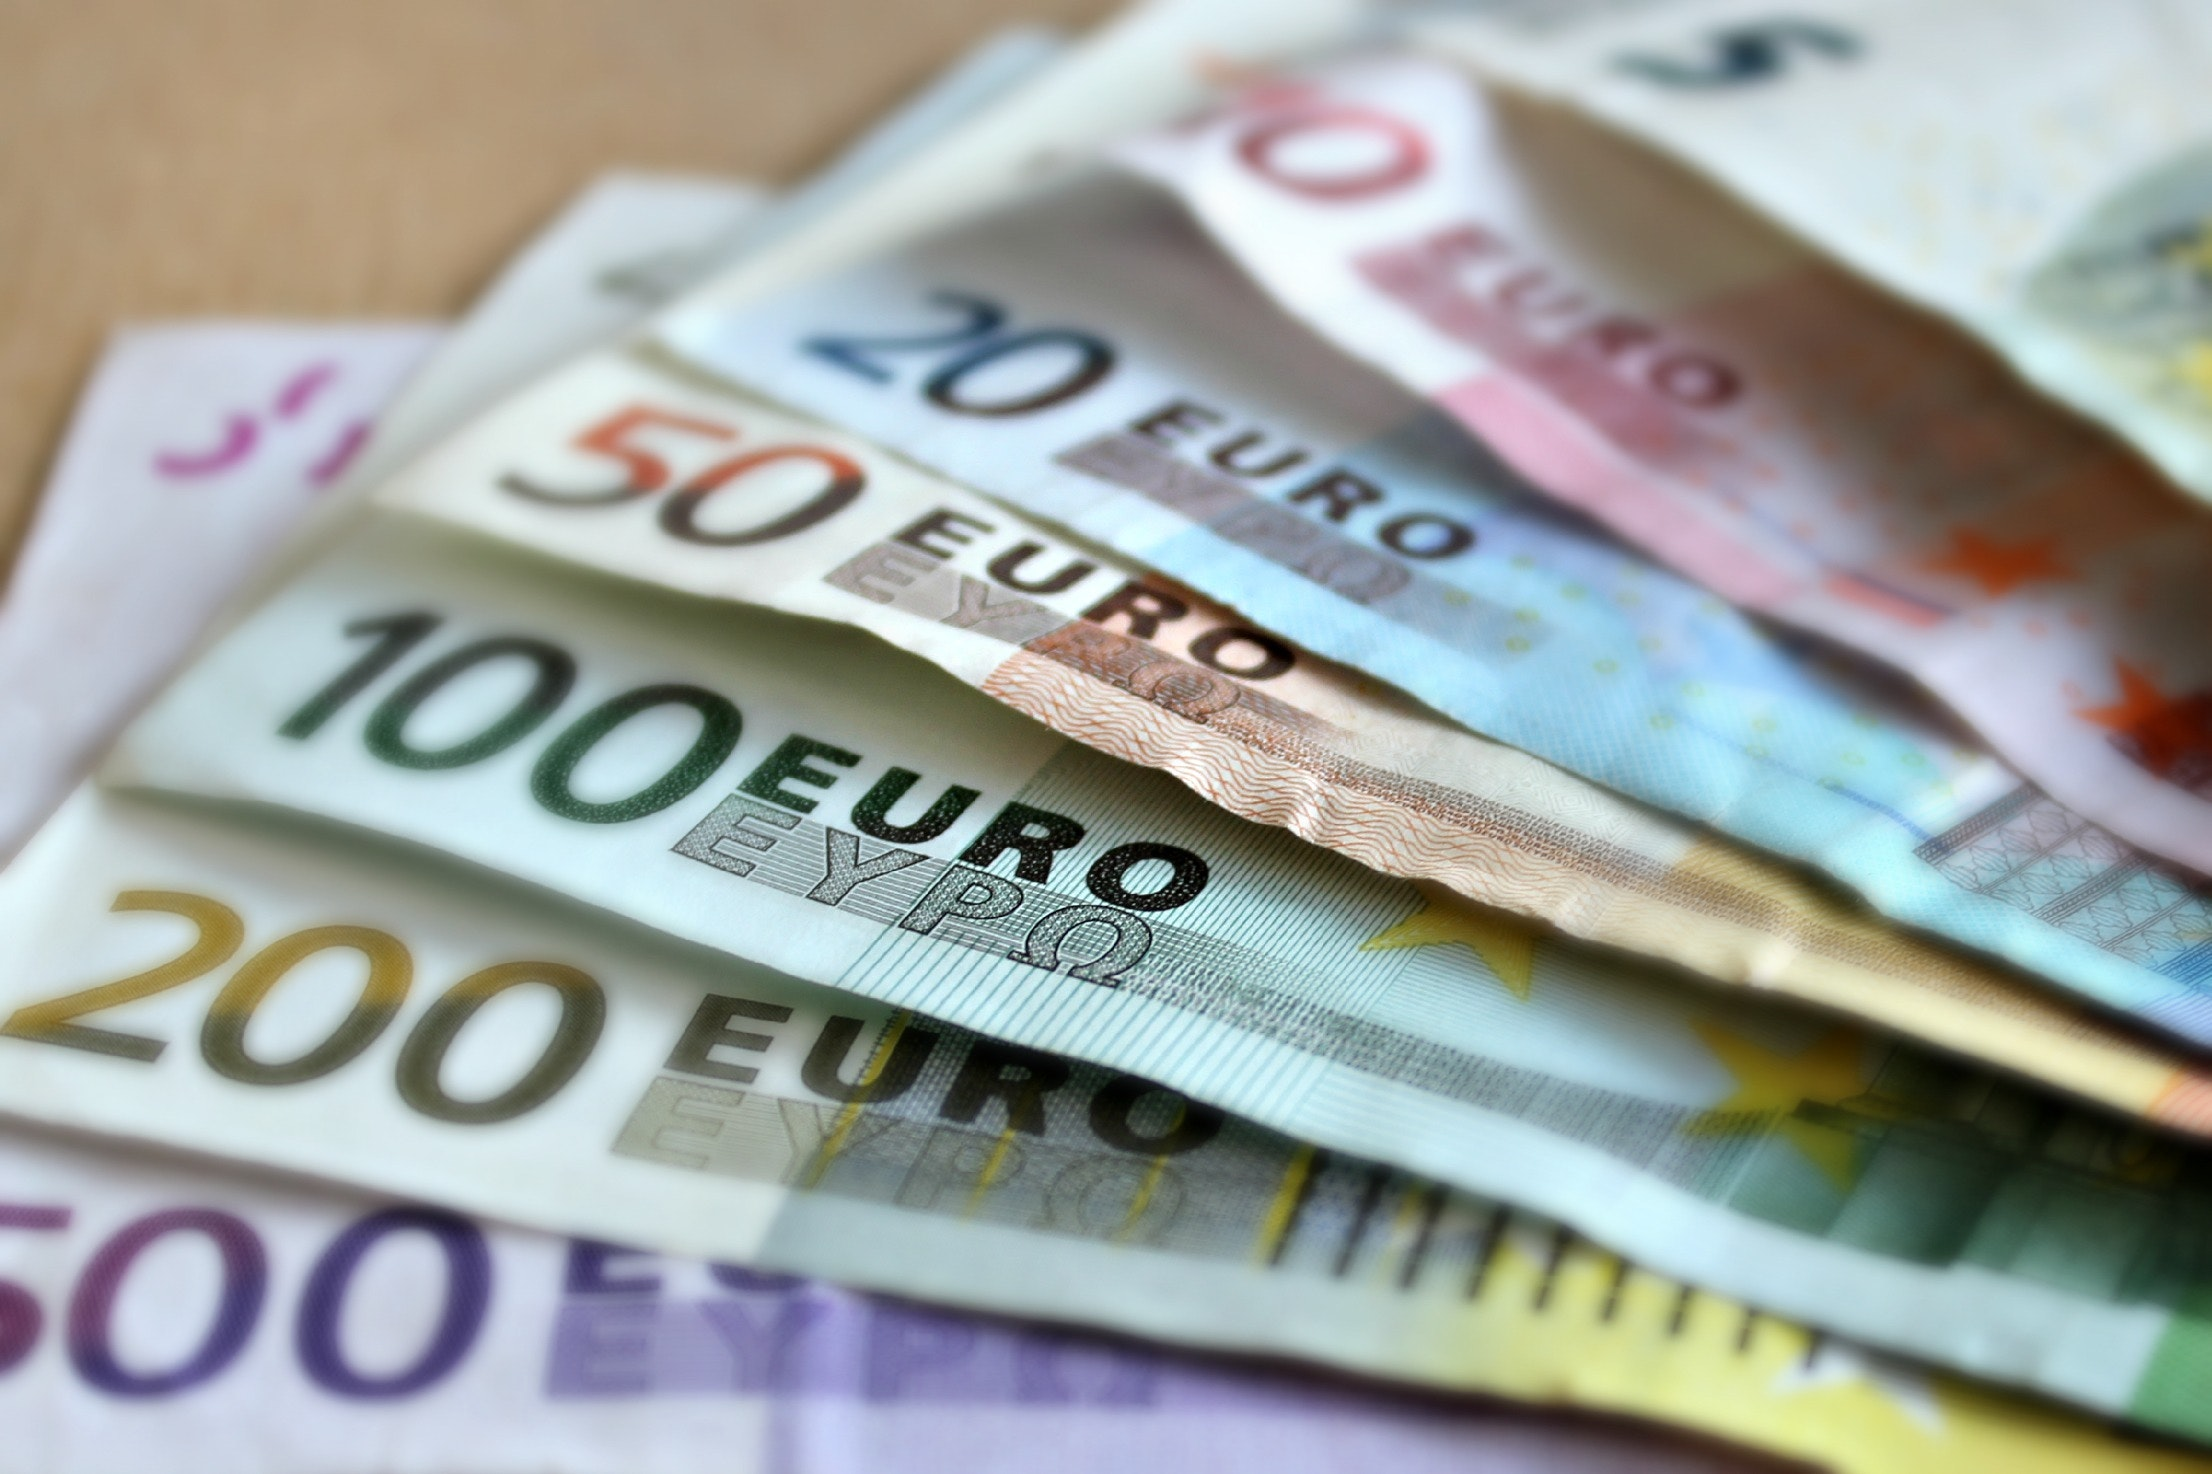 Euro notes lying on a table